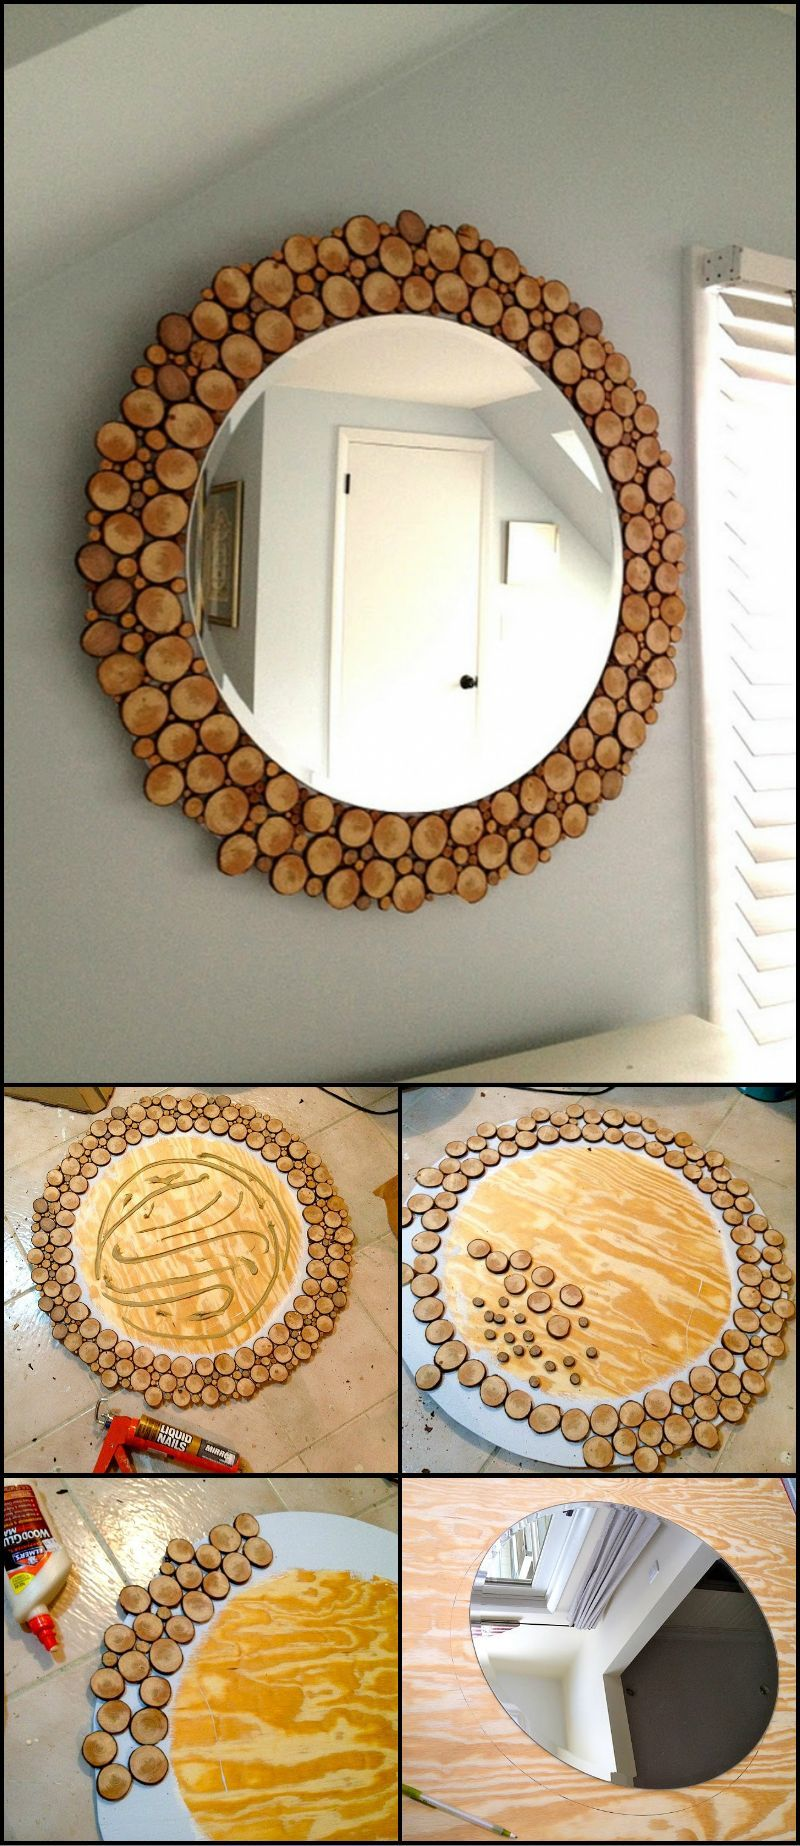 tutorial how to make a circular mirror with wood slices mirror mirror on the wall looking for a weekend diy project